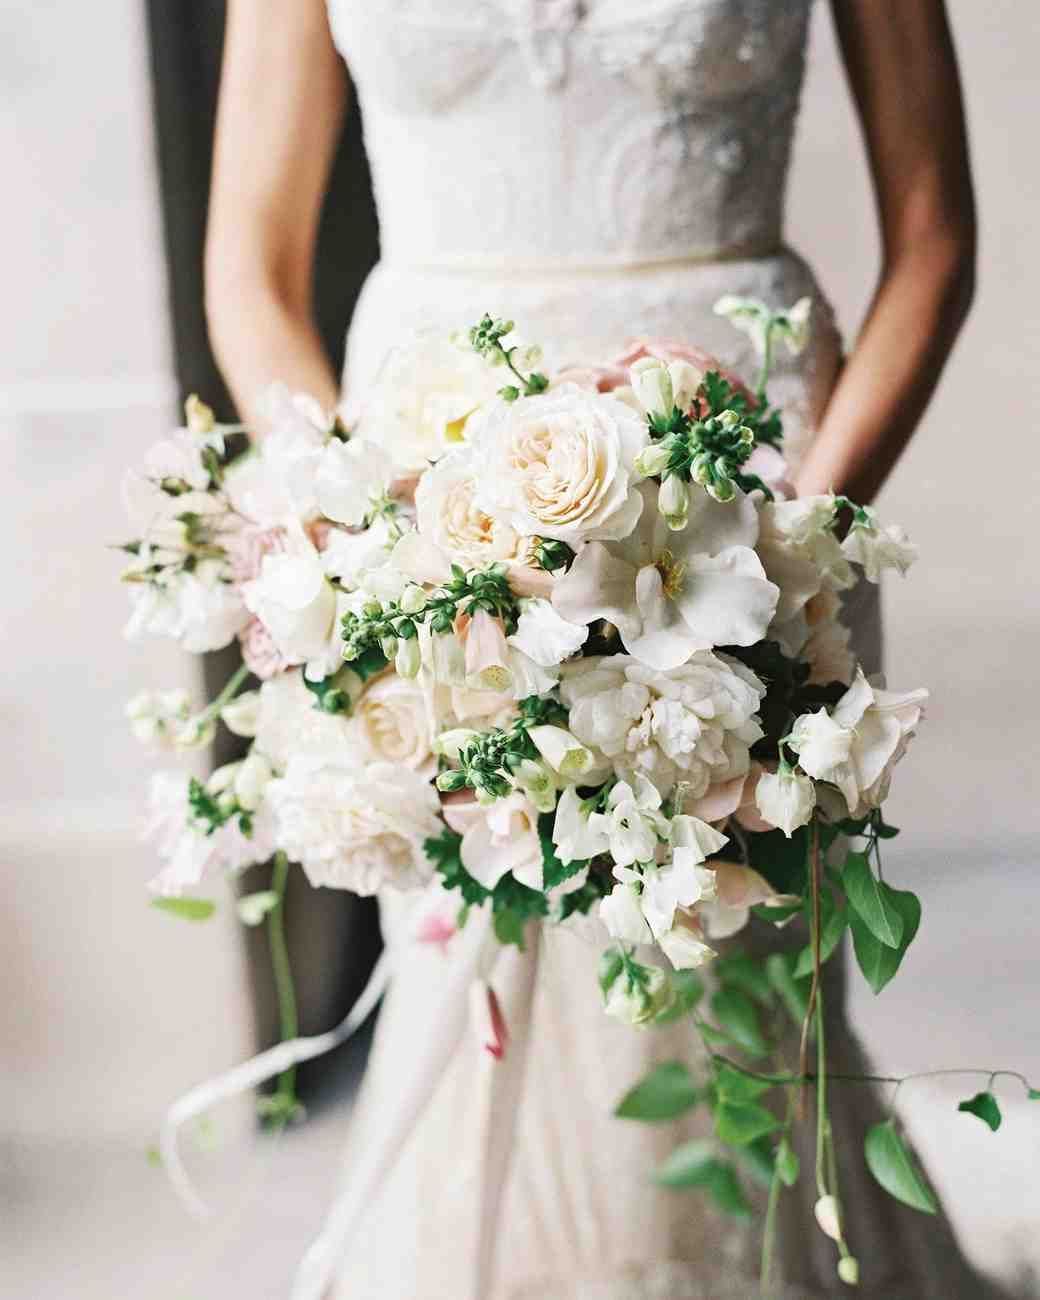 Garden Roses, Sweet Peas, Clematis, Foxgloves, and Rose Geraniums by Nicolette Camille